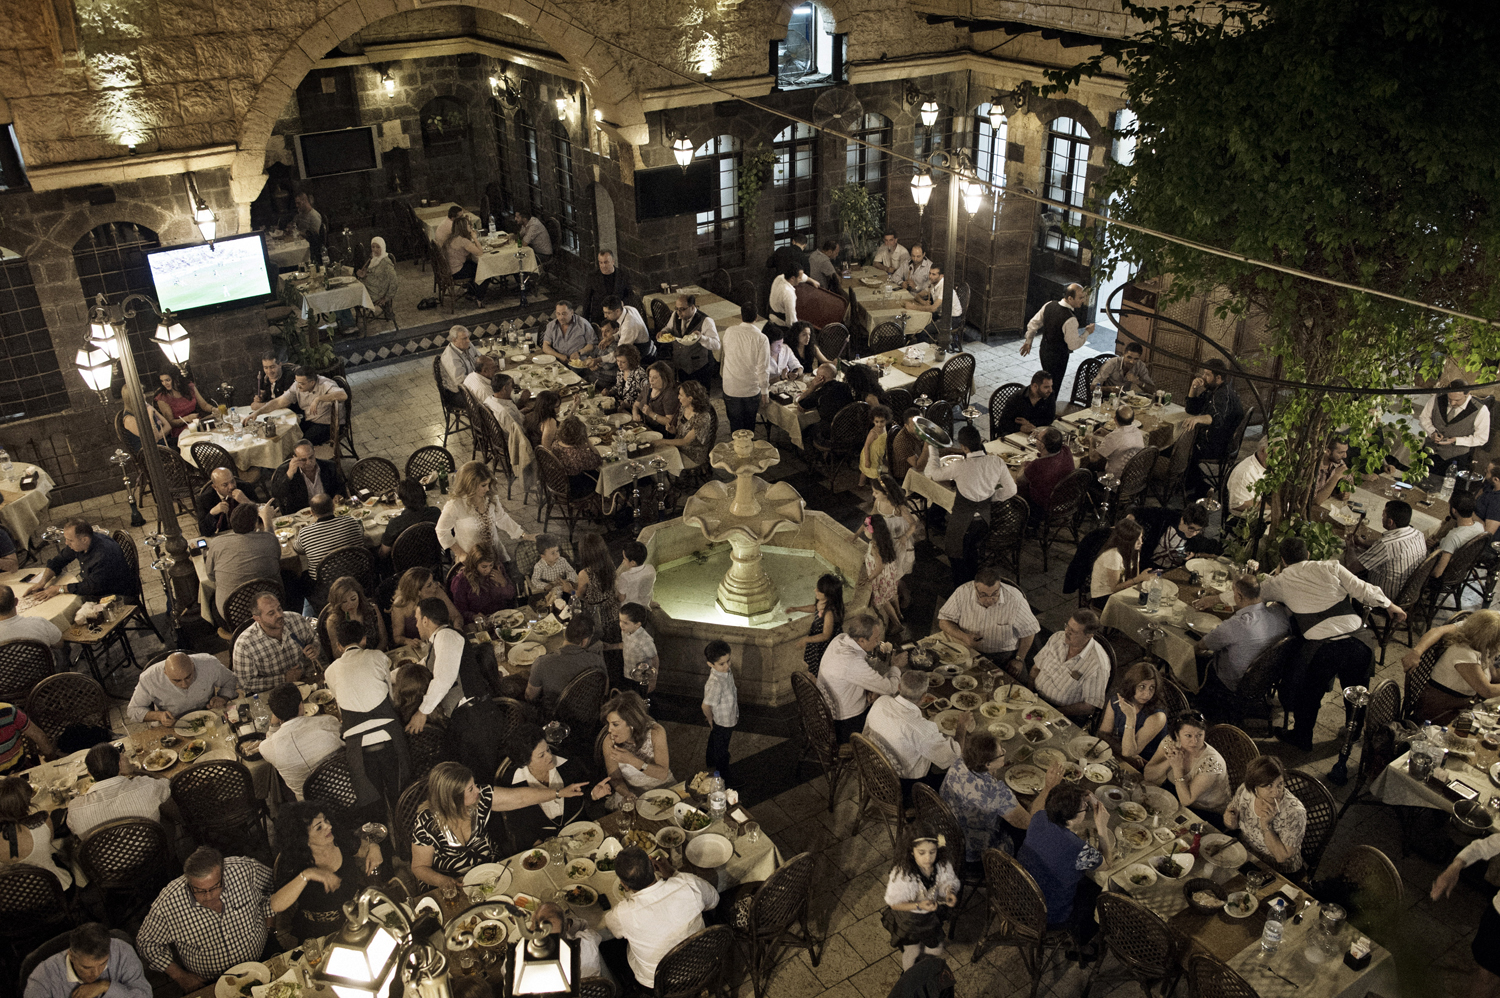 Diners eat at a popular restaurant in an old house in the Old City of Damascus. May 18, 2014.